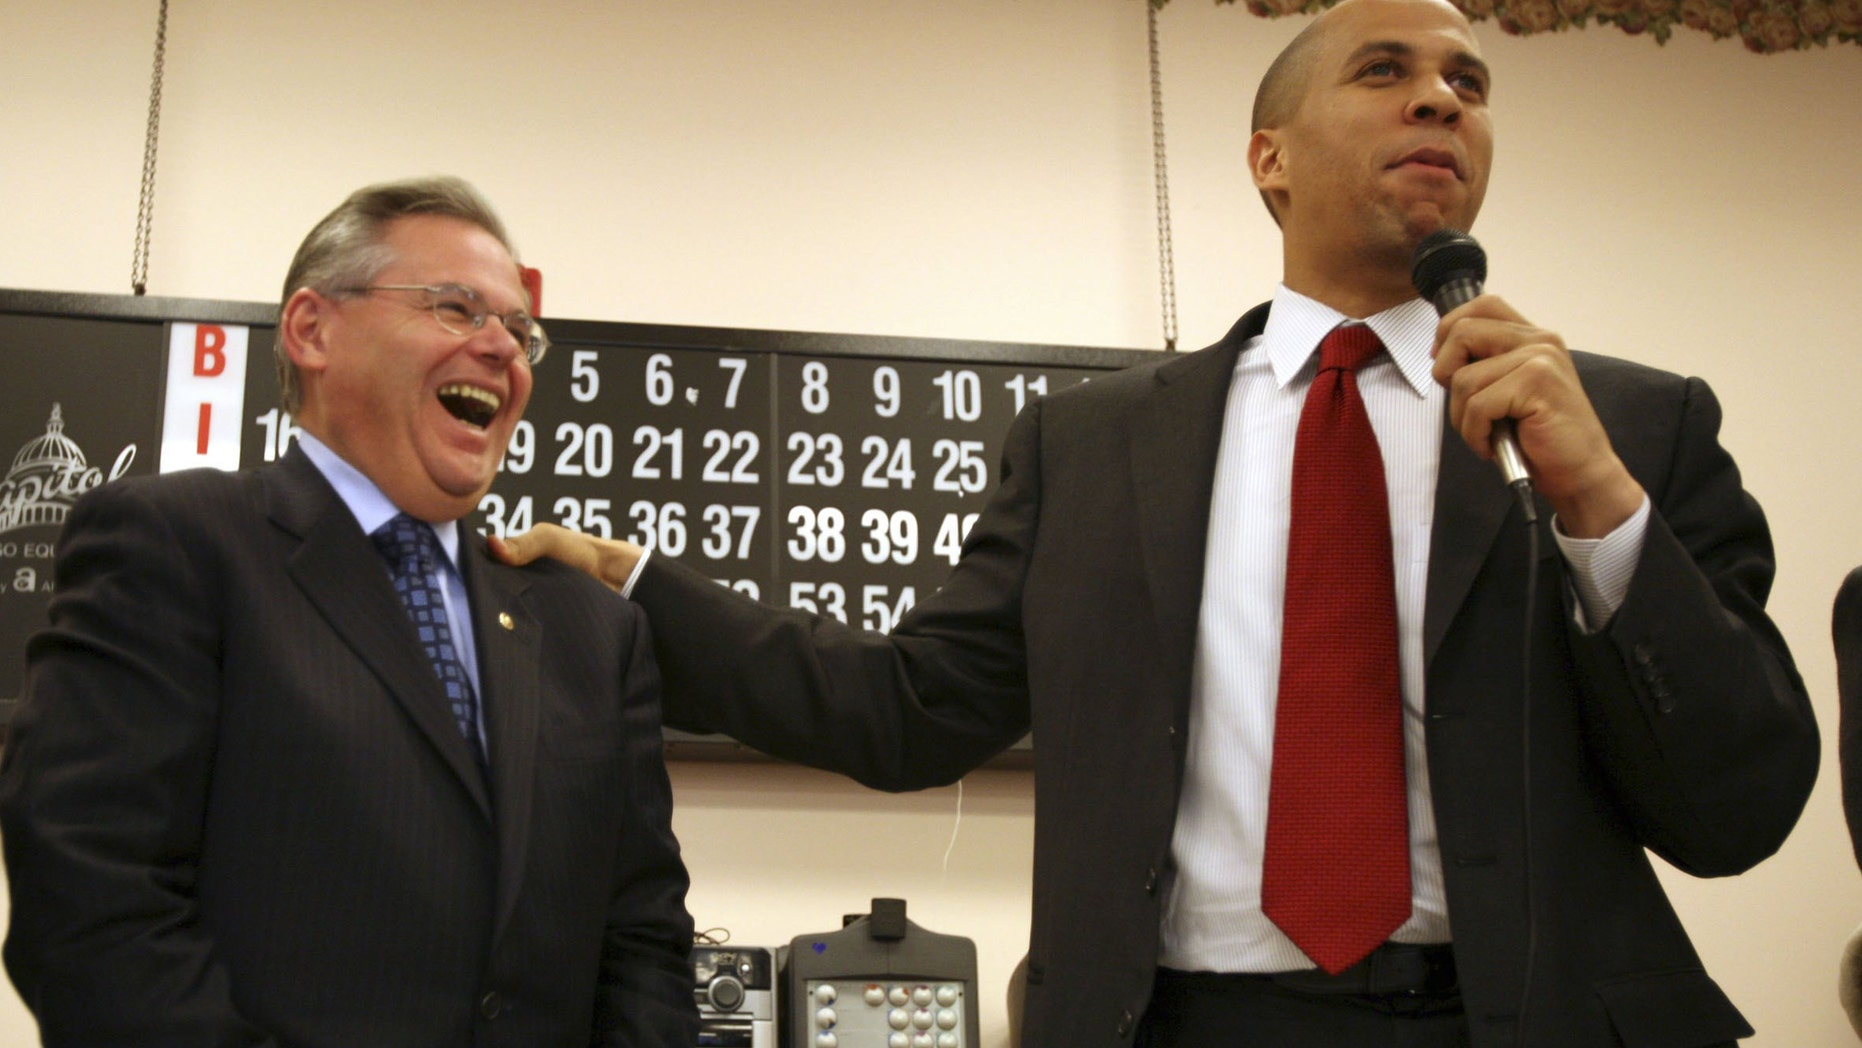 Democrats U.S. Sen. Robert Menendez and Sen.-elect Cory Booker are a rarity in U.S. history -- two minorities representing the same state at the same time in the Senate. Only Hawaii has done the same.